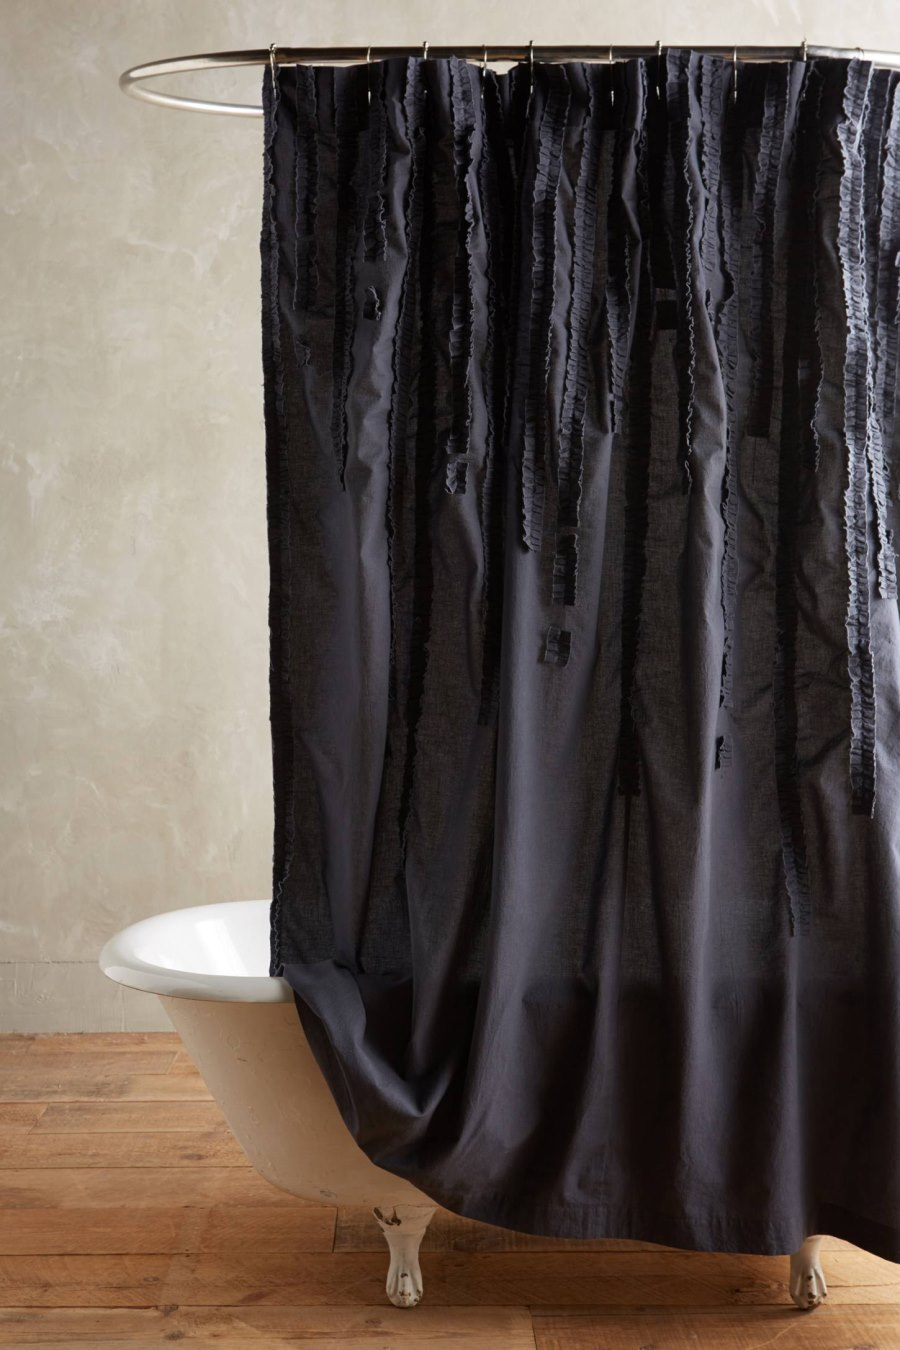 Cotton shower curtain from Anthropologie